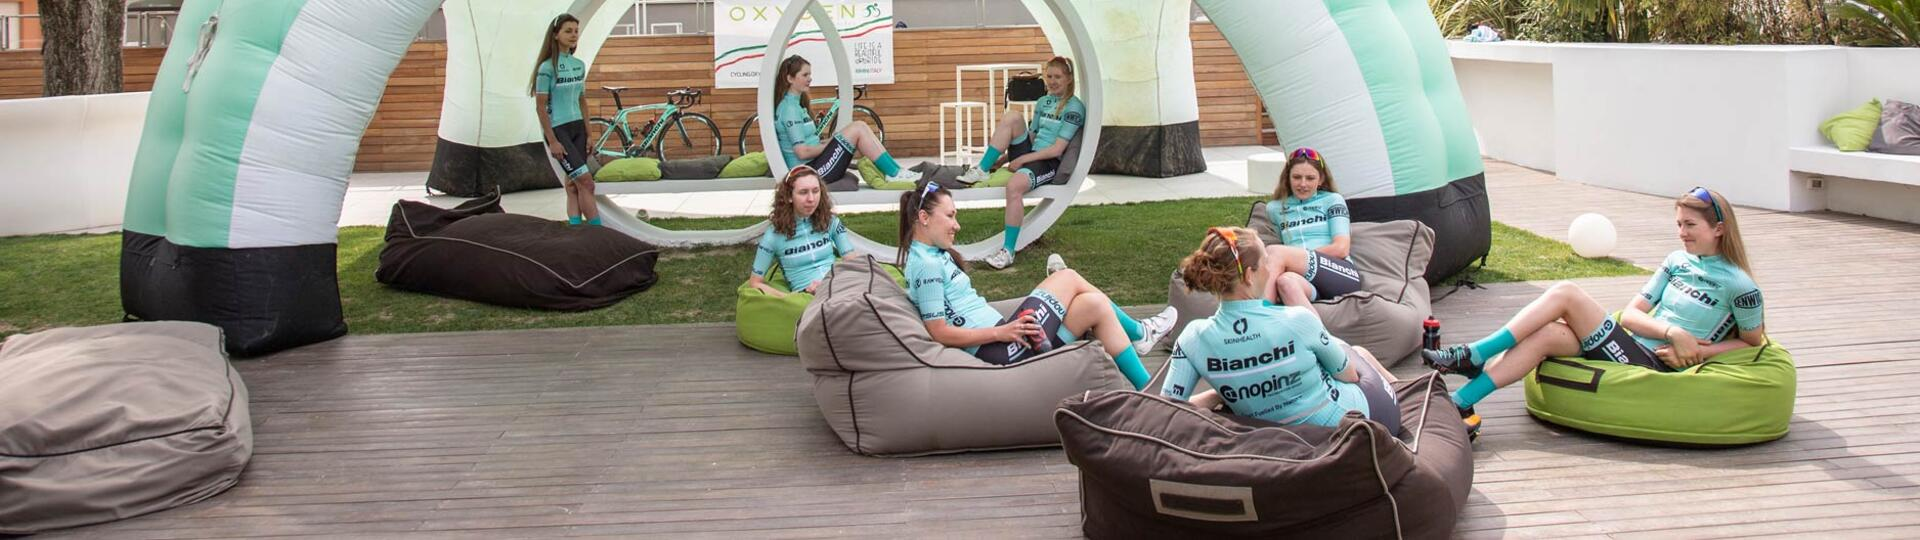 cycling.oxygenhotel en bike-excursions-in-the-marecchia-valley-and-stay-at-a-bike-hotel-in-viserbella-di-rimini 014